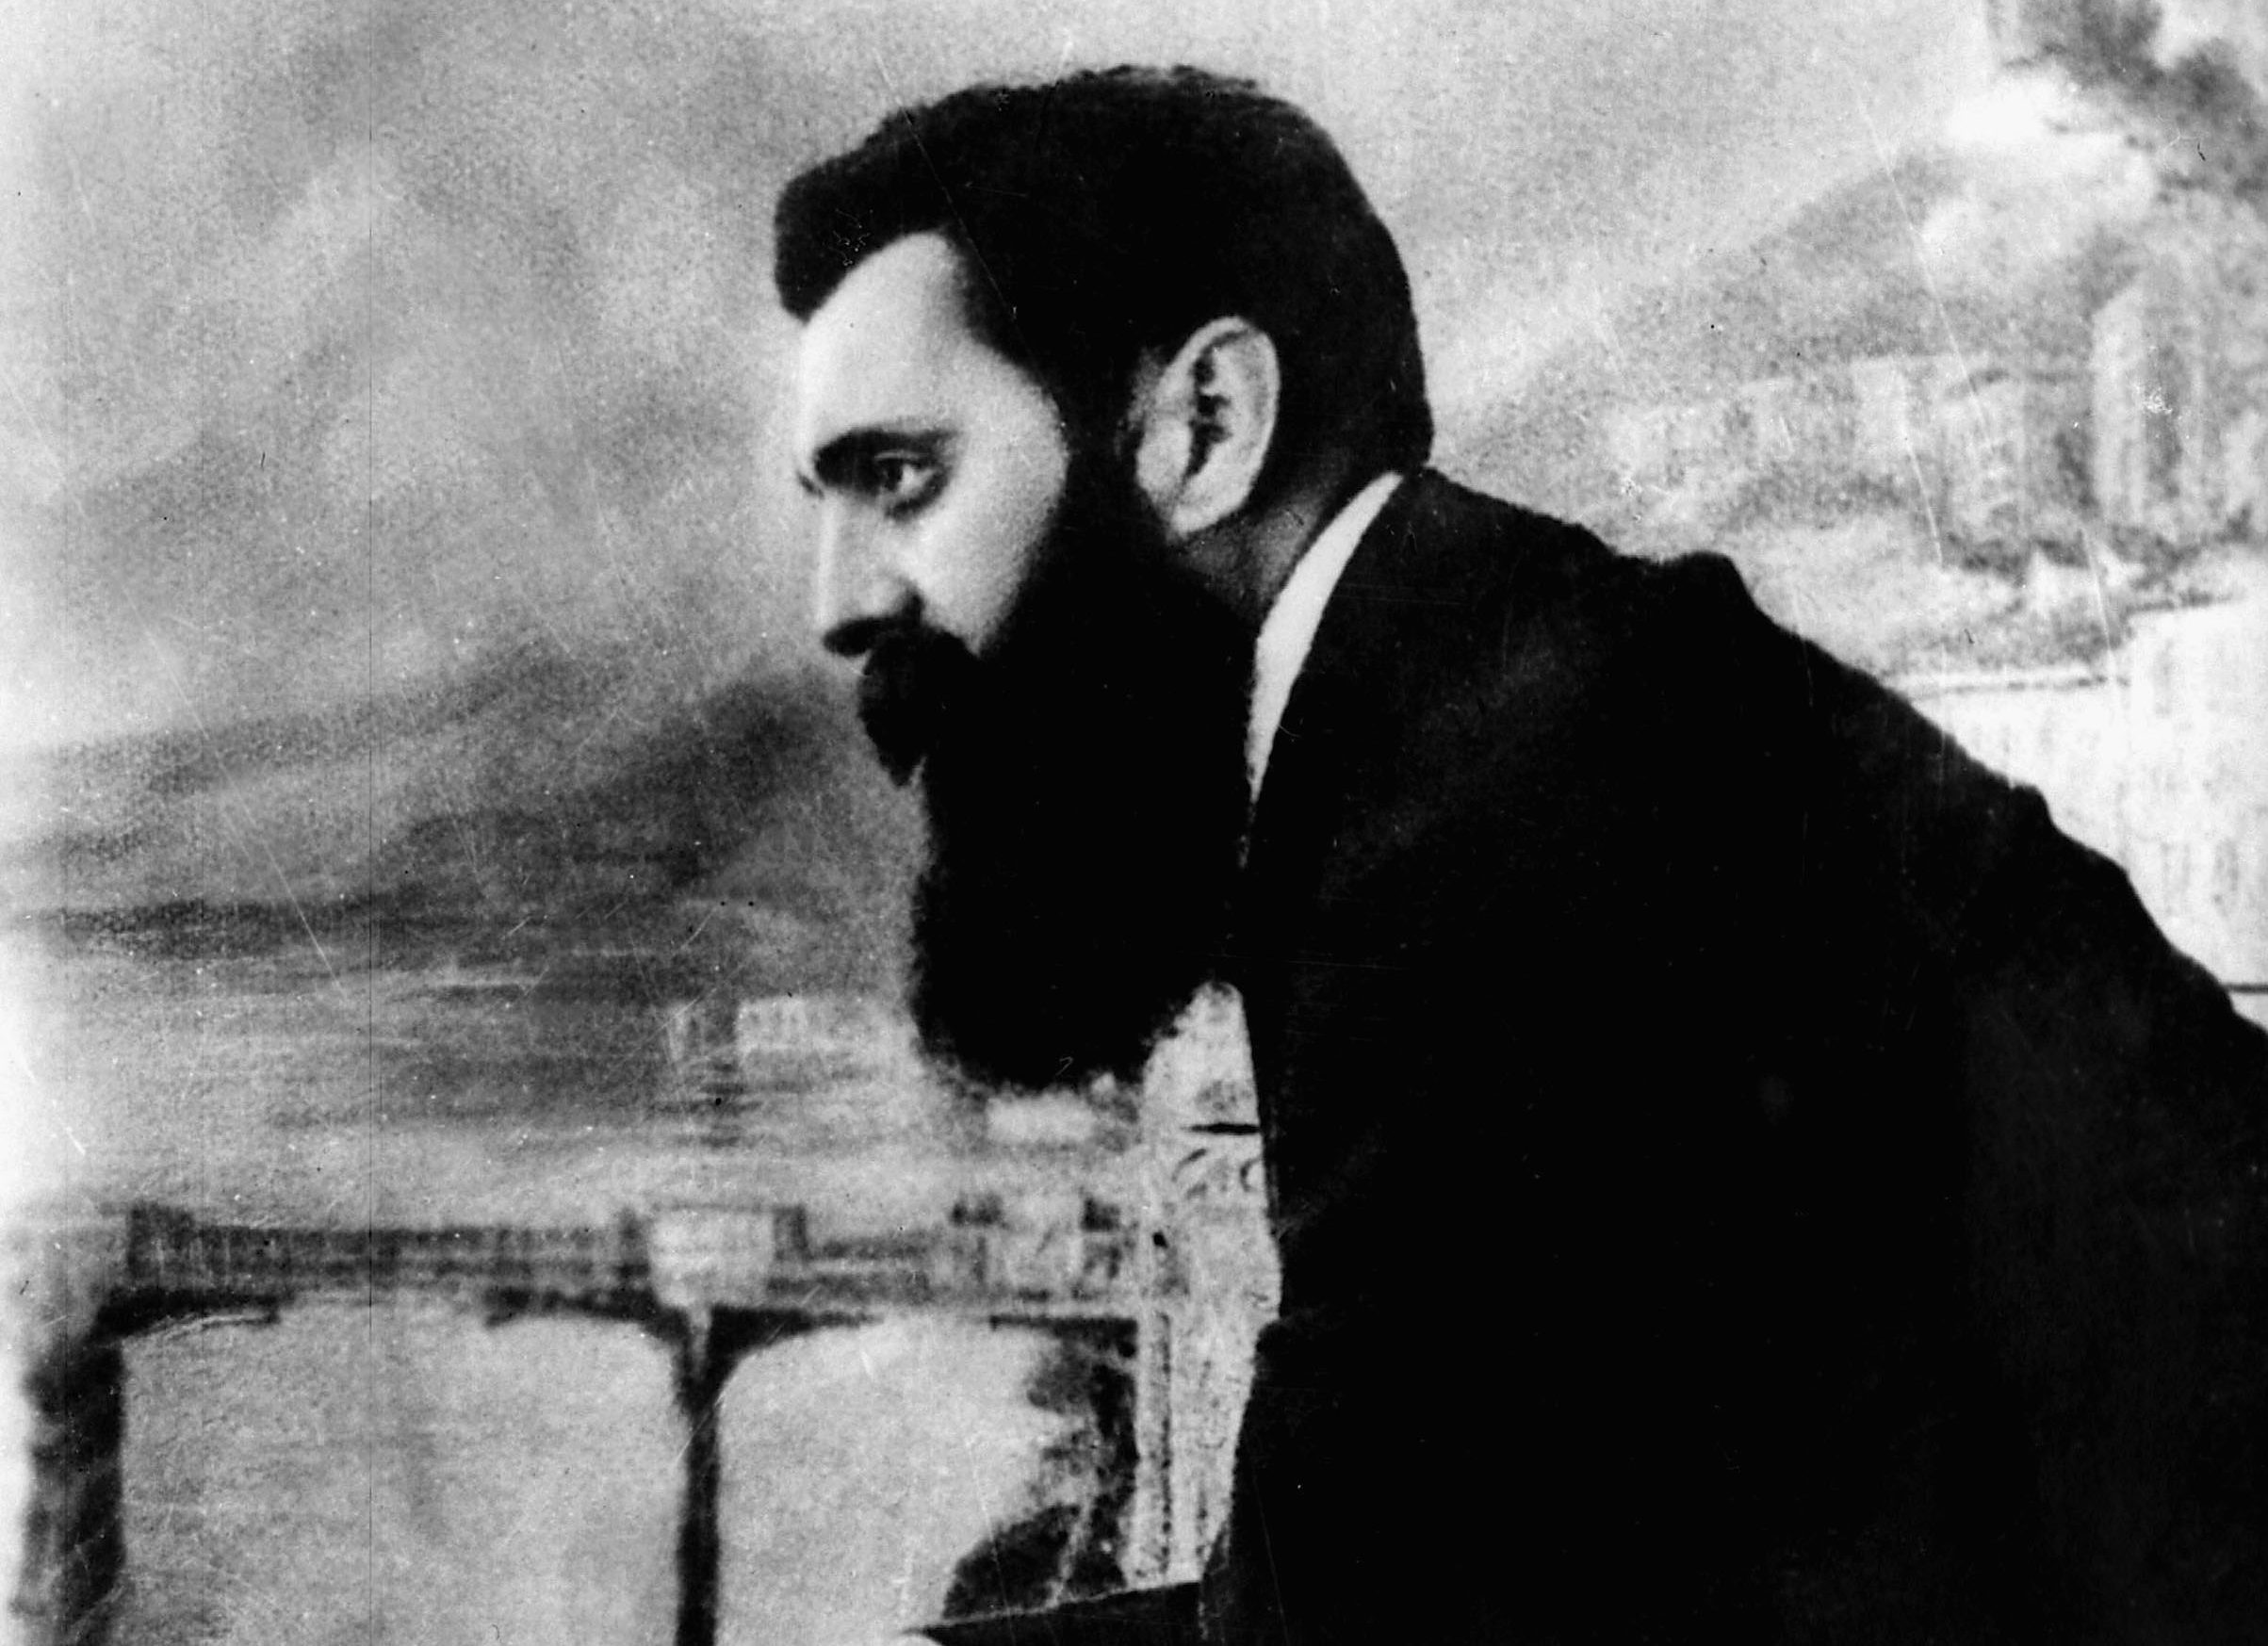 Theodor Herzl, the father of modern Zionism, leaning over the balcony of the Drei Konige Hotel during the first Zionist Congress in Basel, Switzerland, Aug. 29, 1897. (Photo/JTA-GPO-Getty Images)